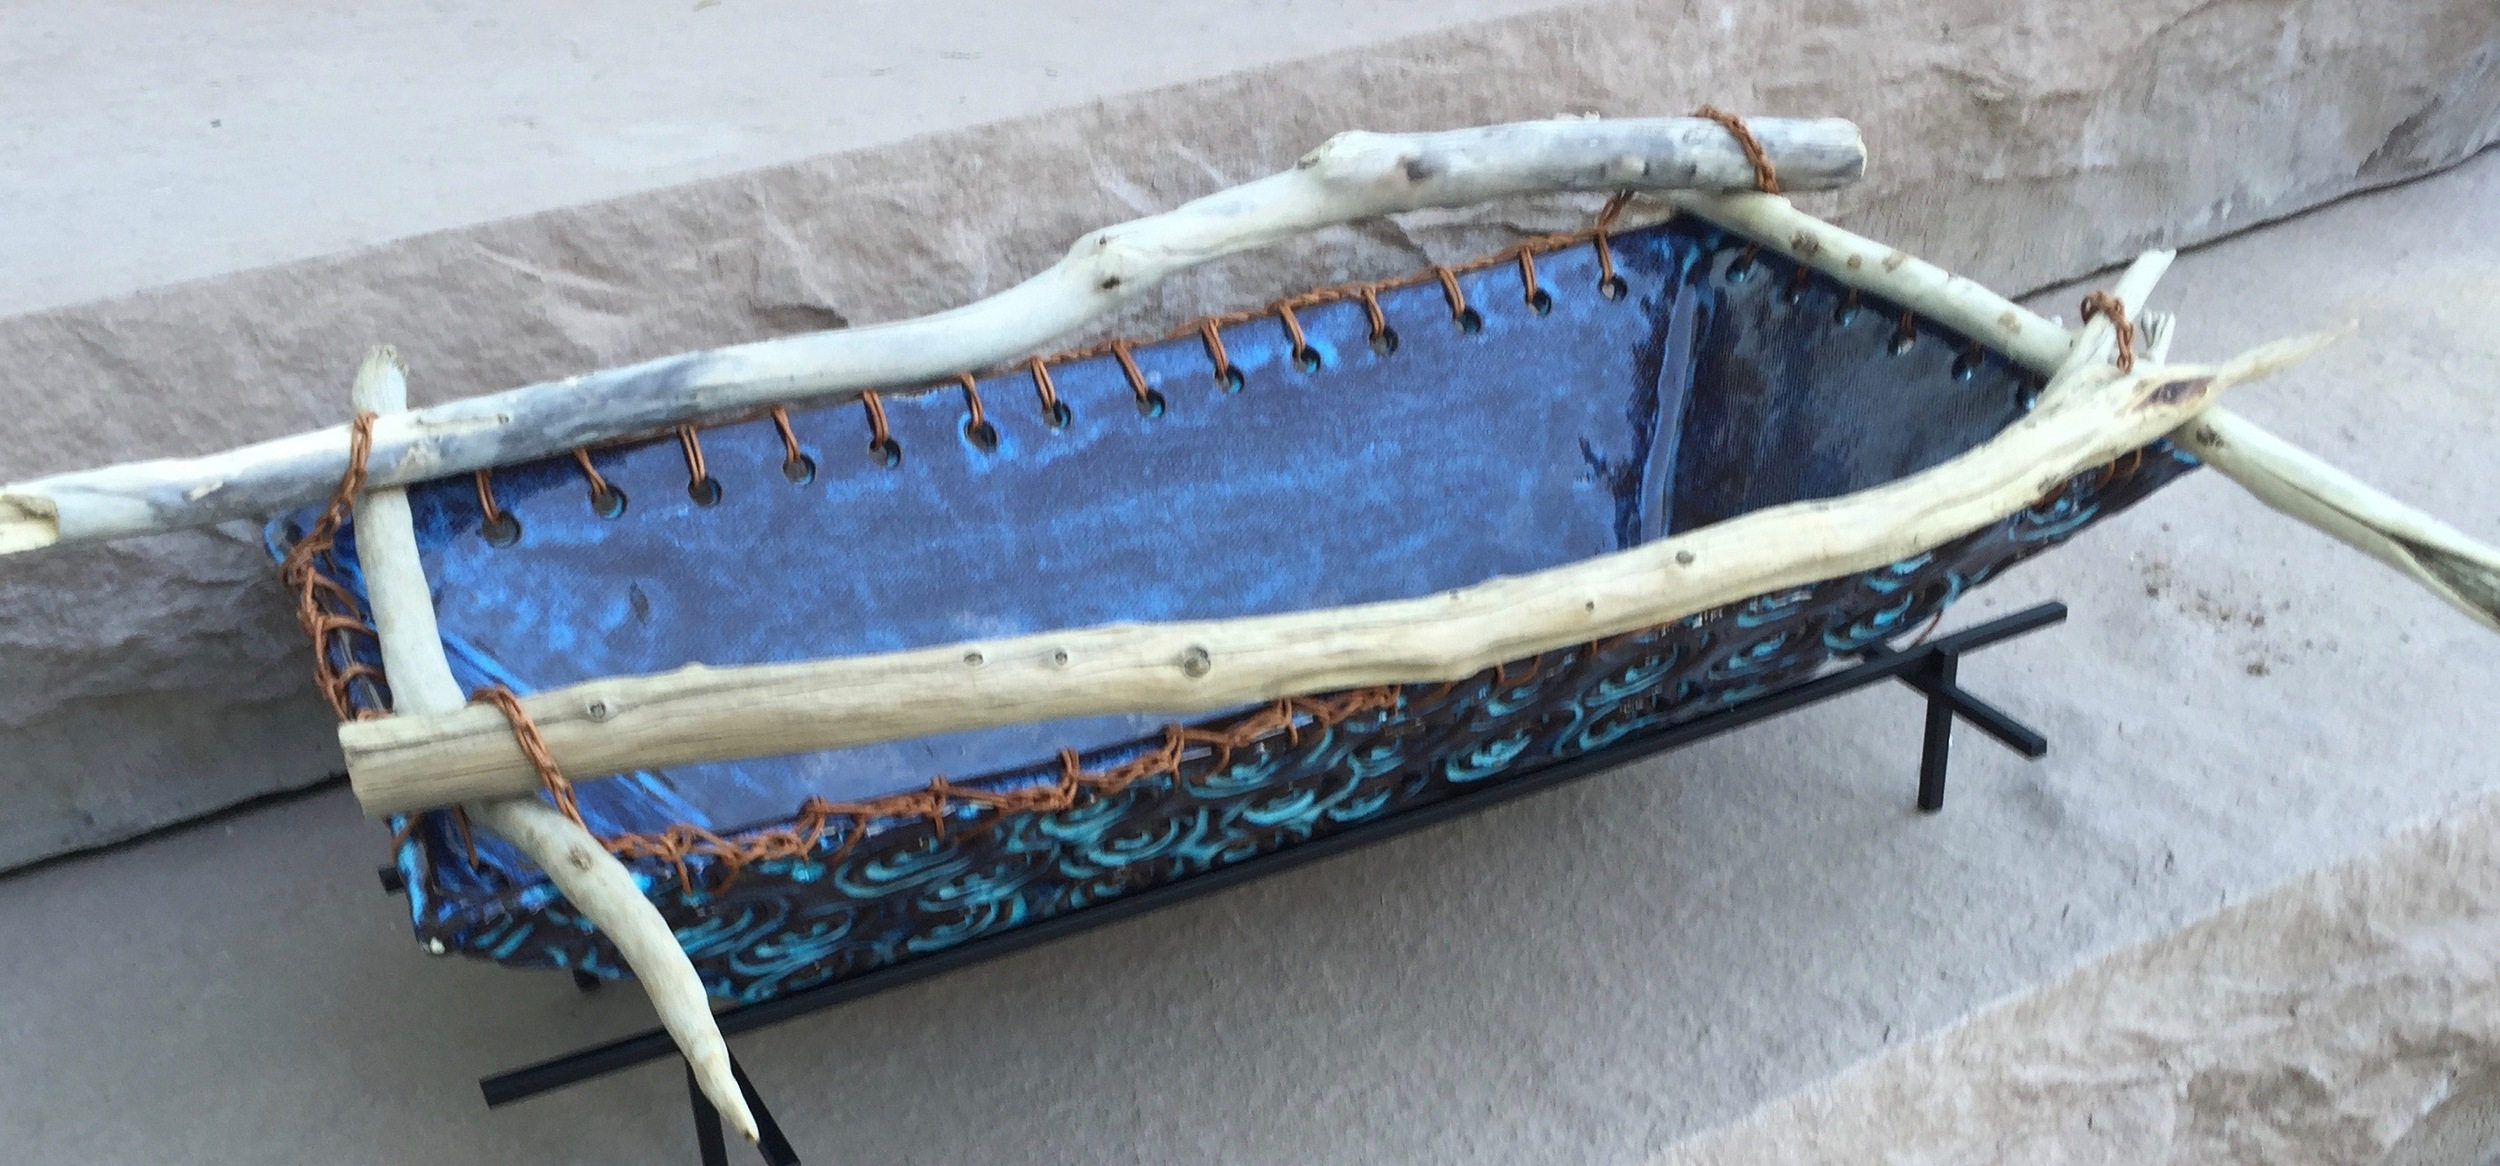 This driftwood basket is one of several I've completed this past week that will be available for sale at  The Cooley Gallery  in Leesburg, Va.